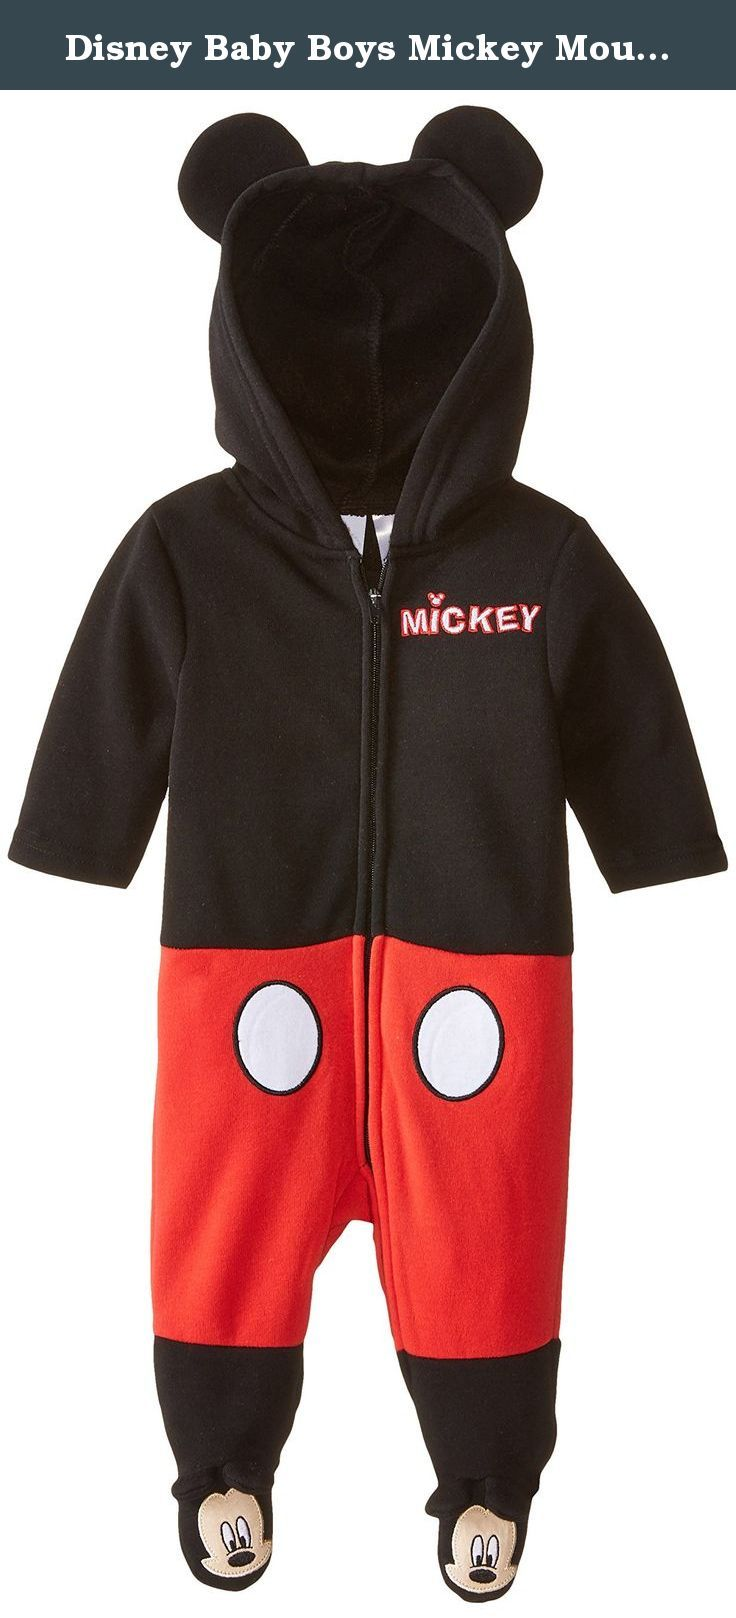 f06df790042e Disney Baby Boys Mickey Mouse Coverall with Ears and 3D Embroidery ...